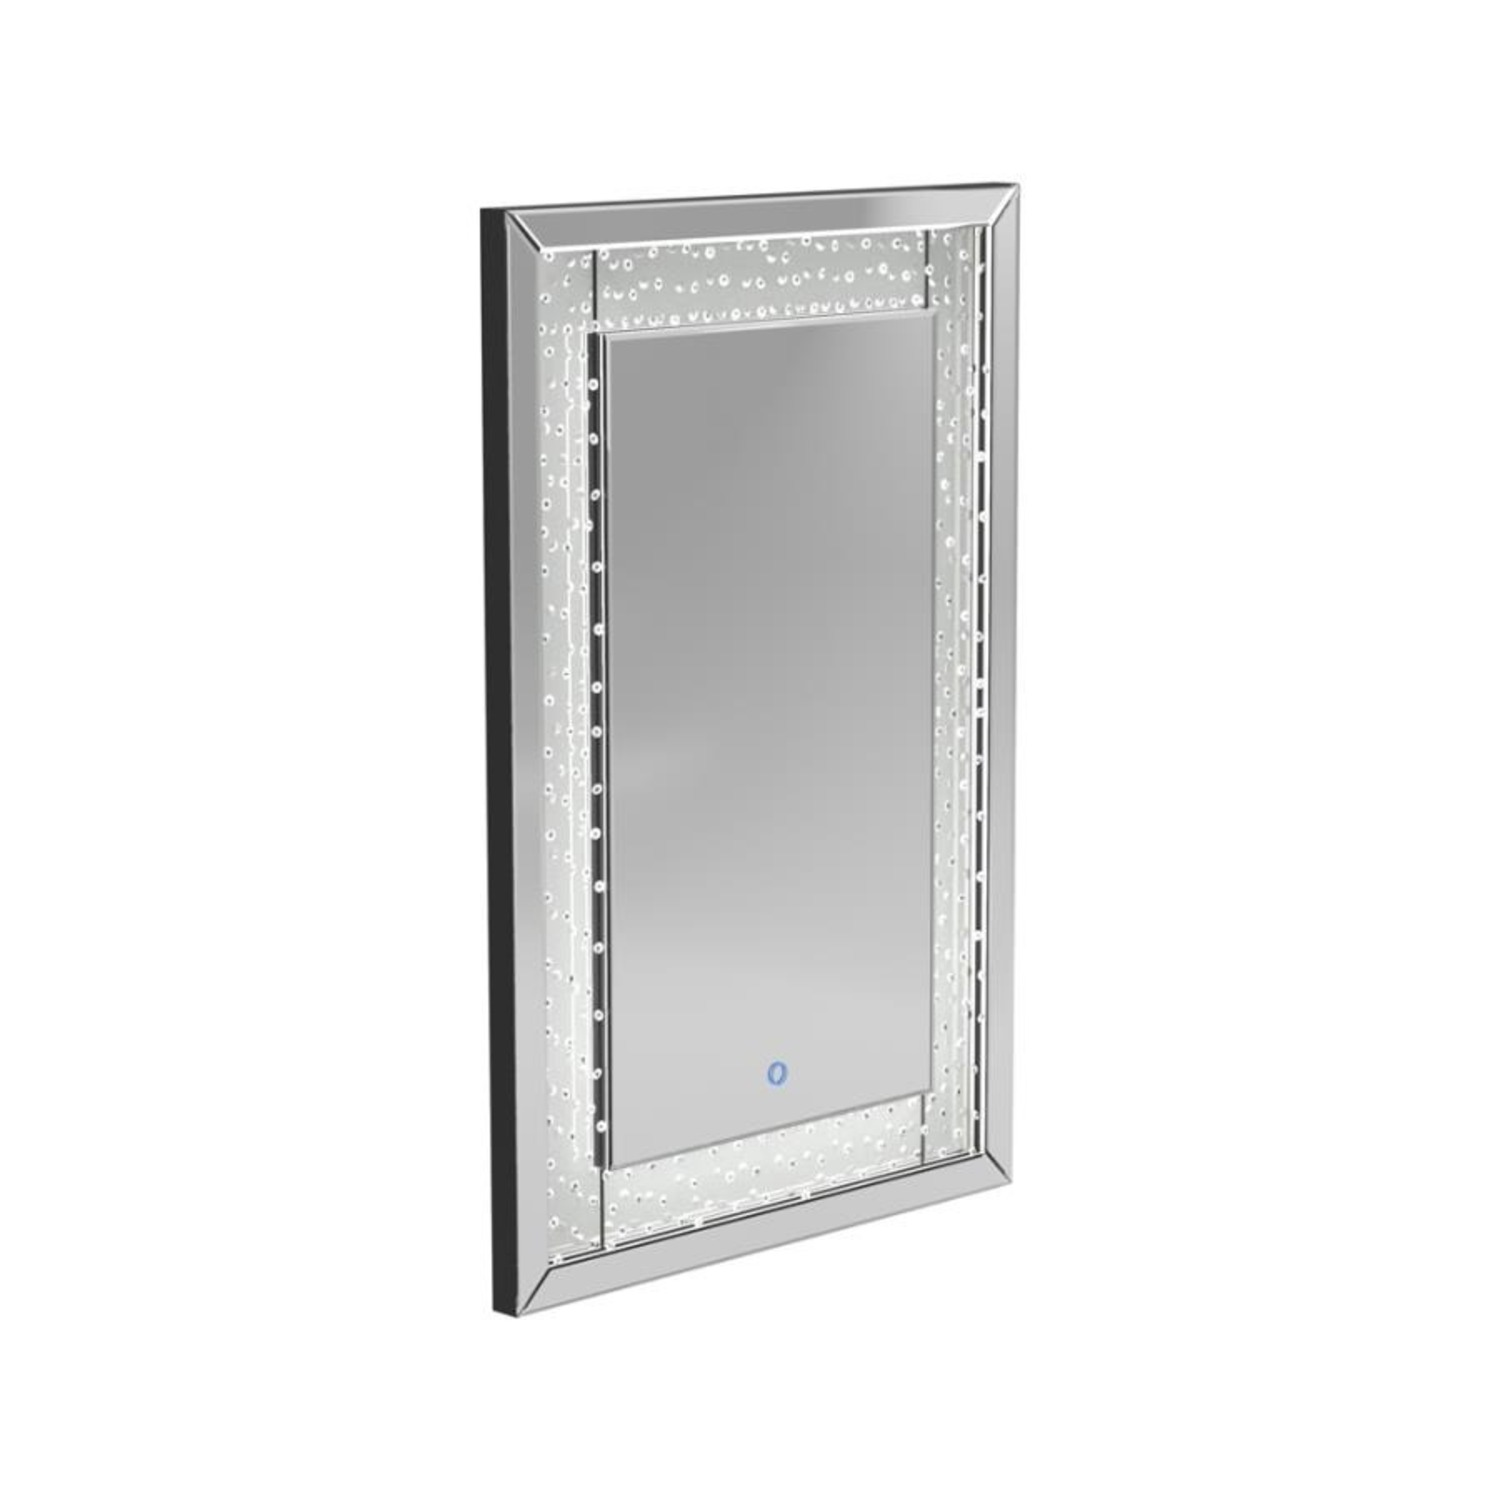 Wall Mirror In Silver Frame W/ Acrylic Crystals - image-0